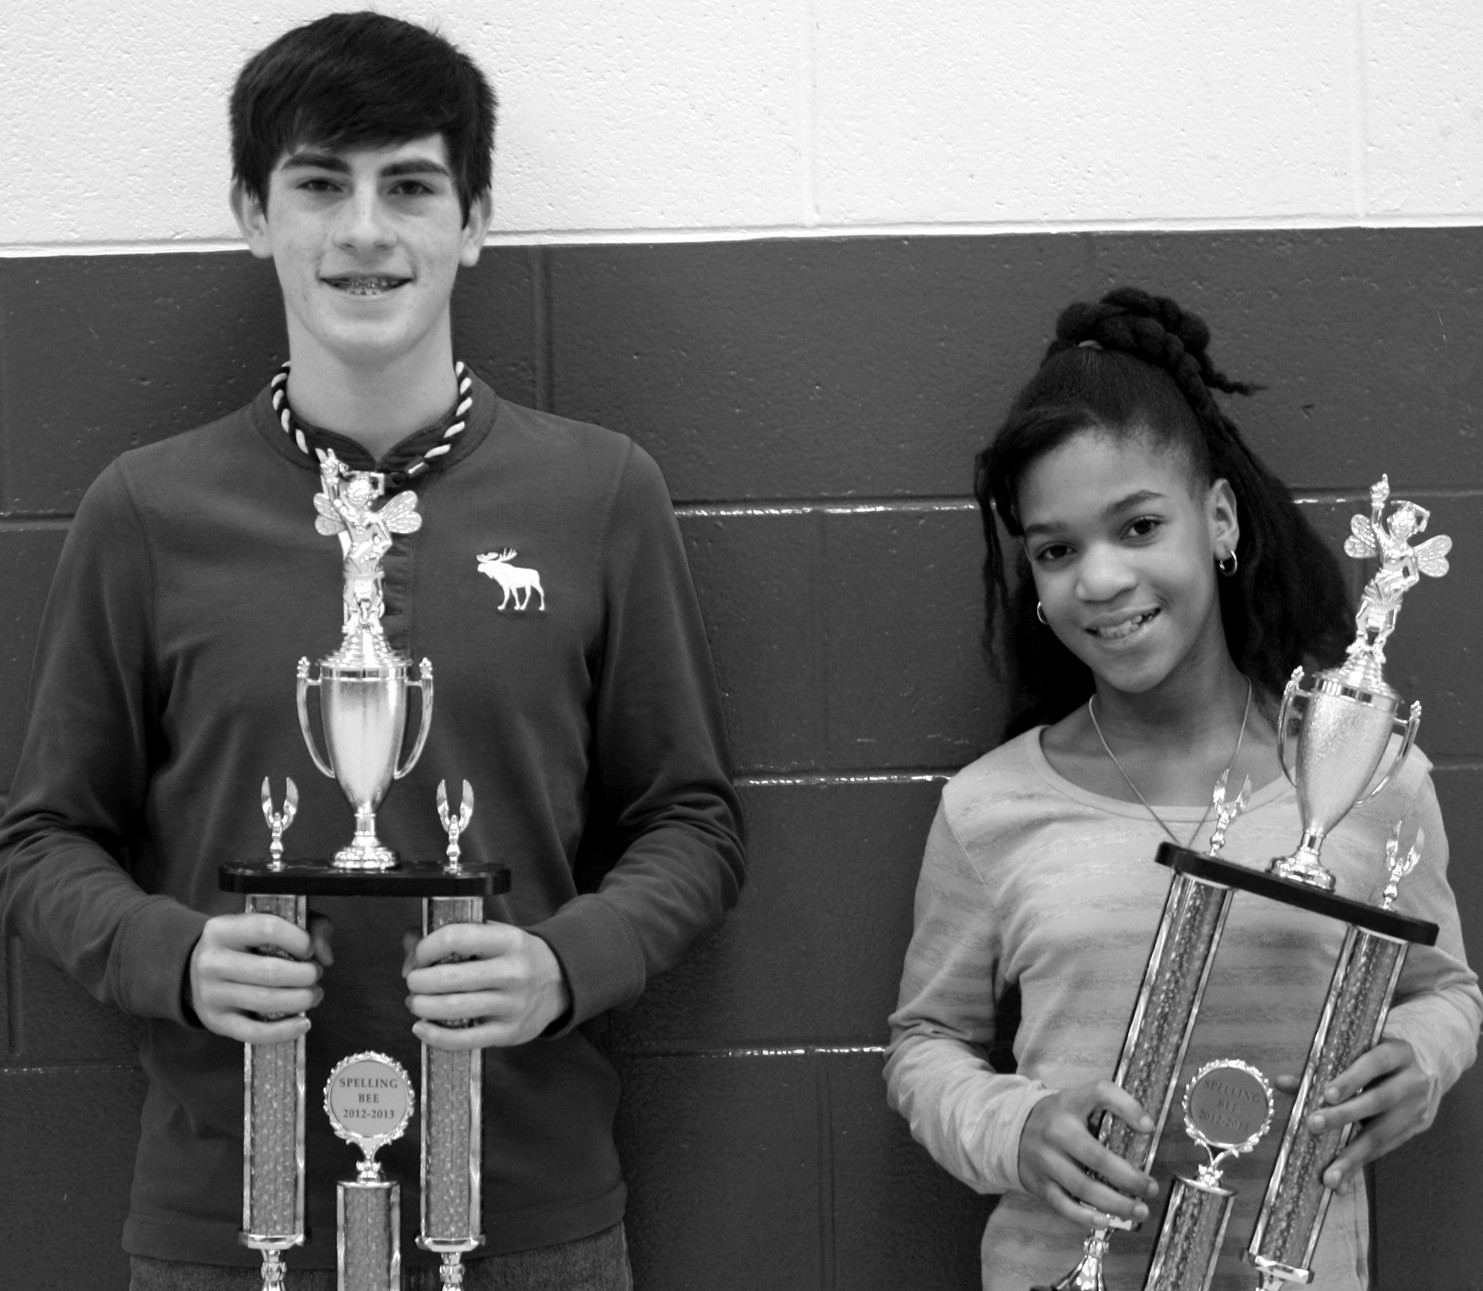 Last Wednesday, 26 Oneonta students from grades 4 – 8 participated in the Oneonta City School Spelling Bee. OHS winner Matilon Nash won after correctly spelling the word 'consignment,' and Kayla Thomas was named the elementary winner after spelling 'ardent' accurately. Nash and Thomas will advance to the Blount County Spelling Bee on Tuesday, Feb. 5, at 9 a.m. at J.B. Pennington High School. – Nicole Singleton